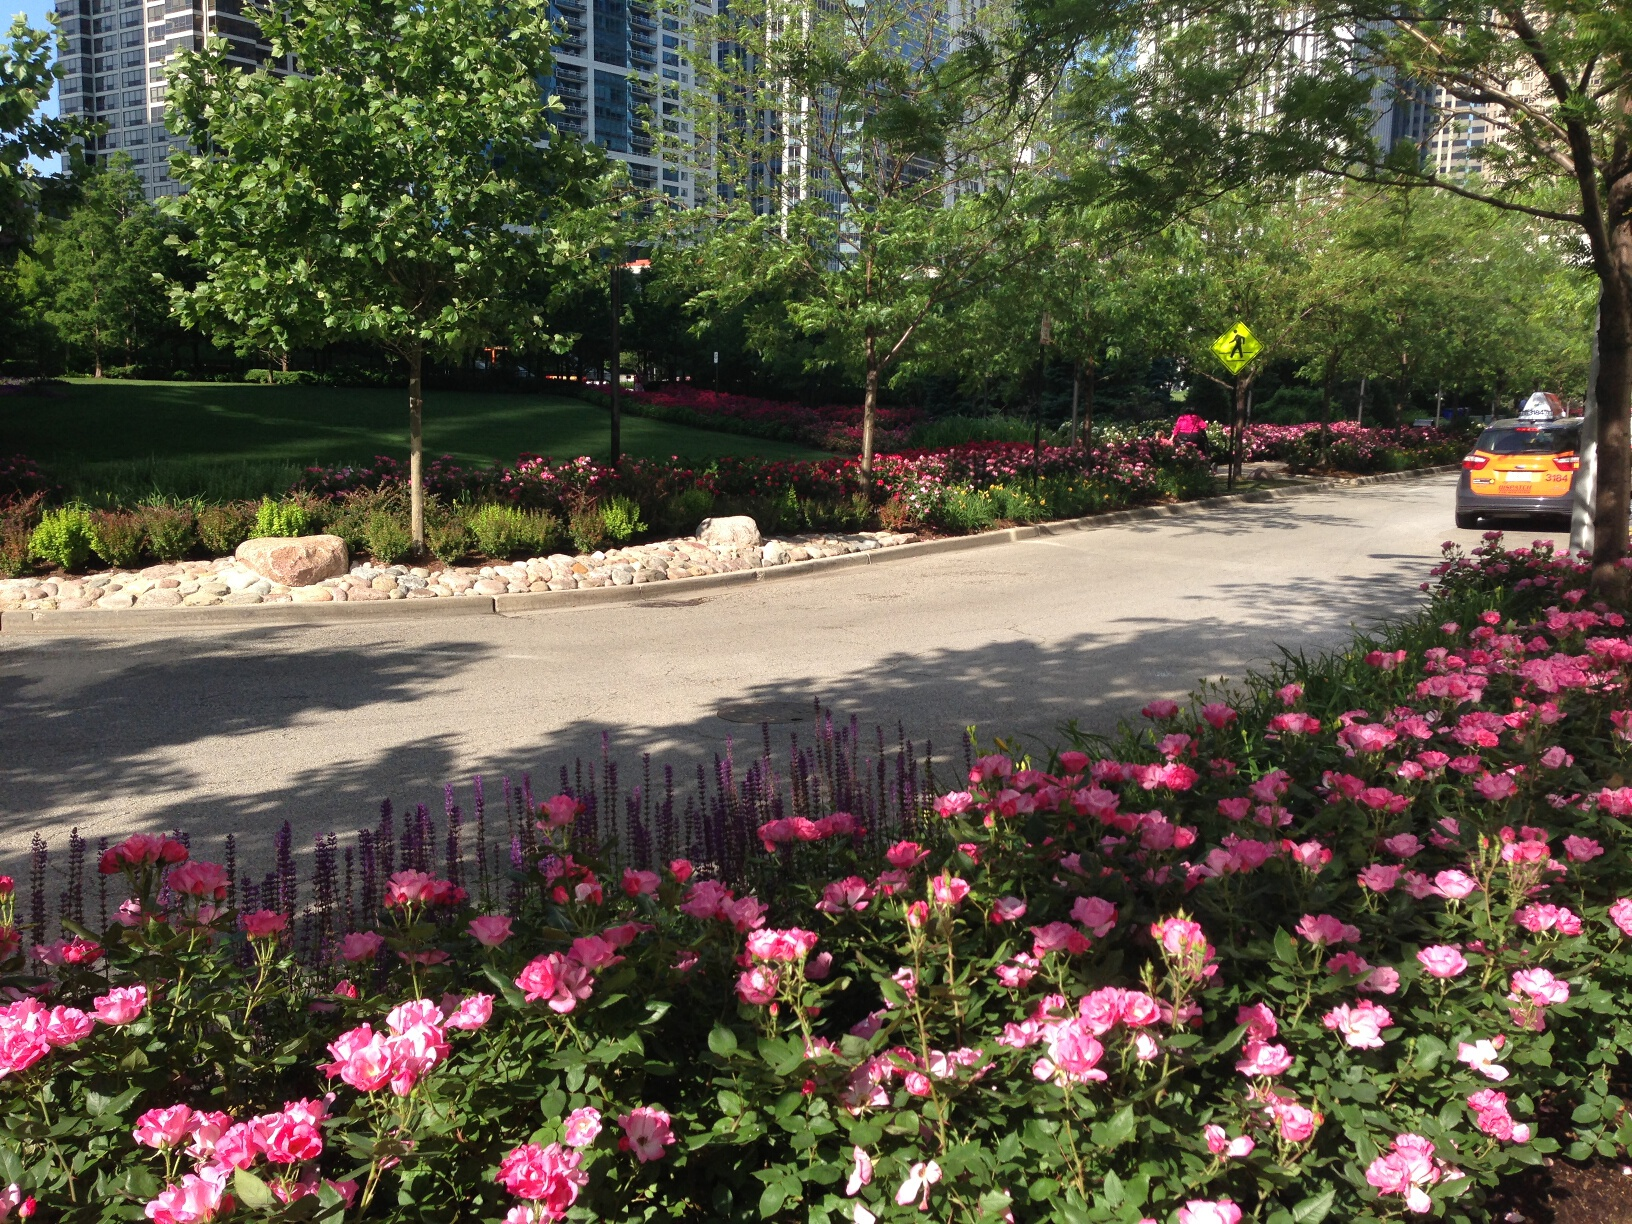 Roses in LSE Park